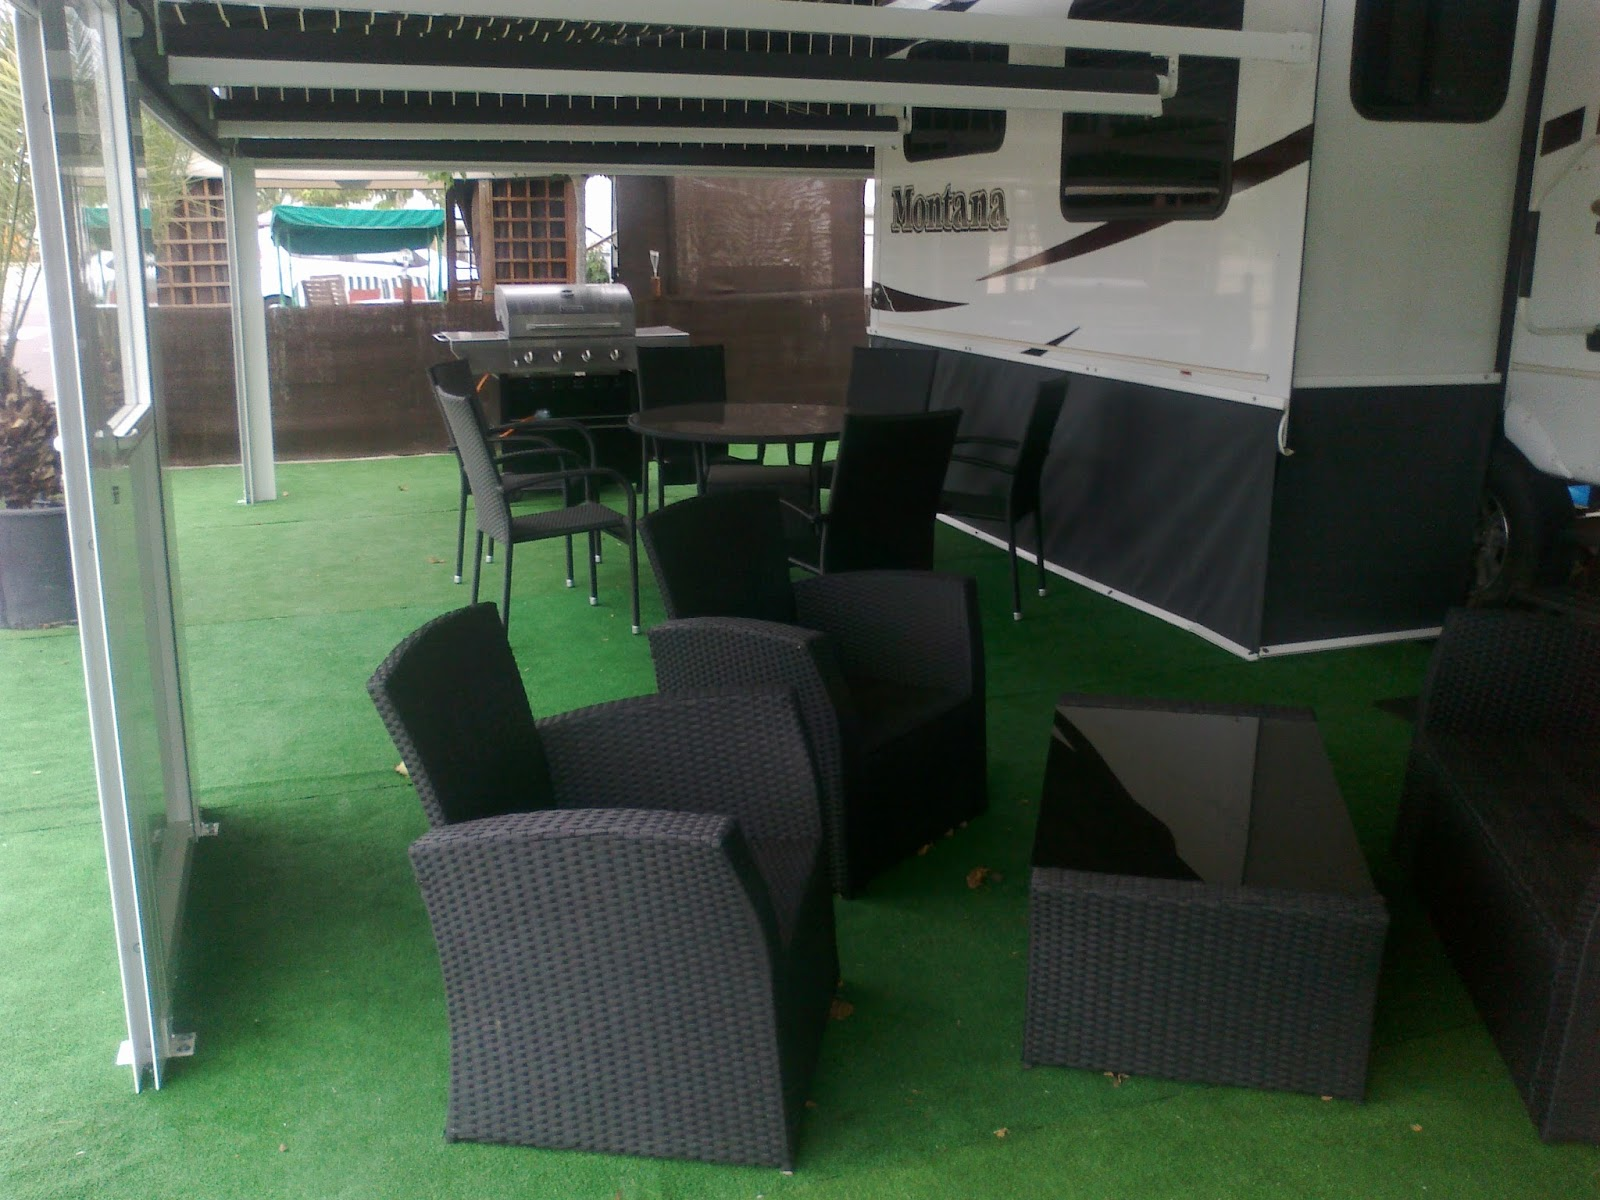 Awning Area And Furniture